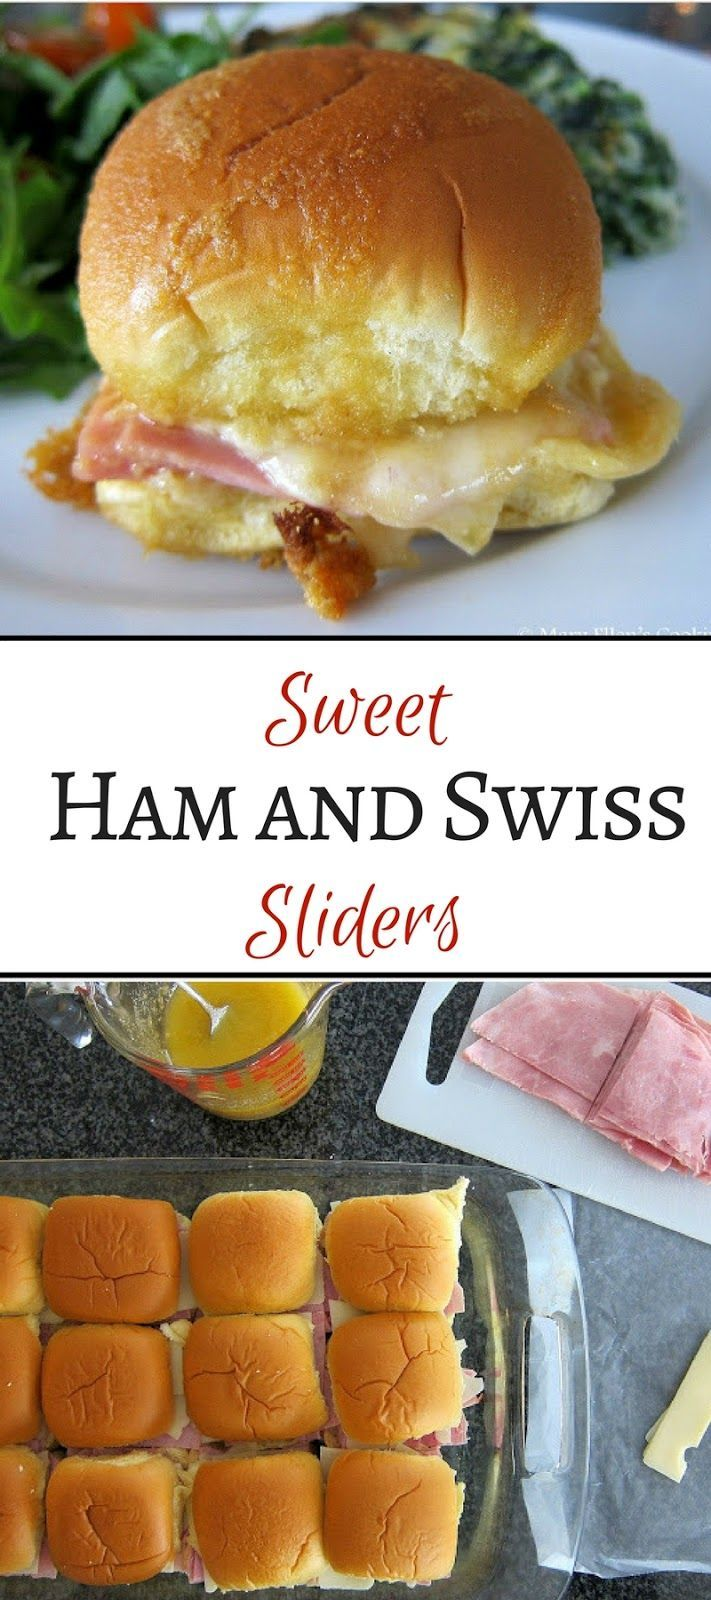 The perfect sandwich for entertaining - parties, brunch, game day, appetizers. Ham and Swiss on slider rolls with a sweet and sticky sauce, baked to perfection.